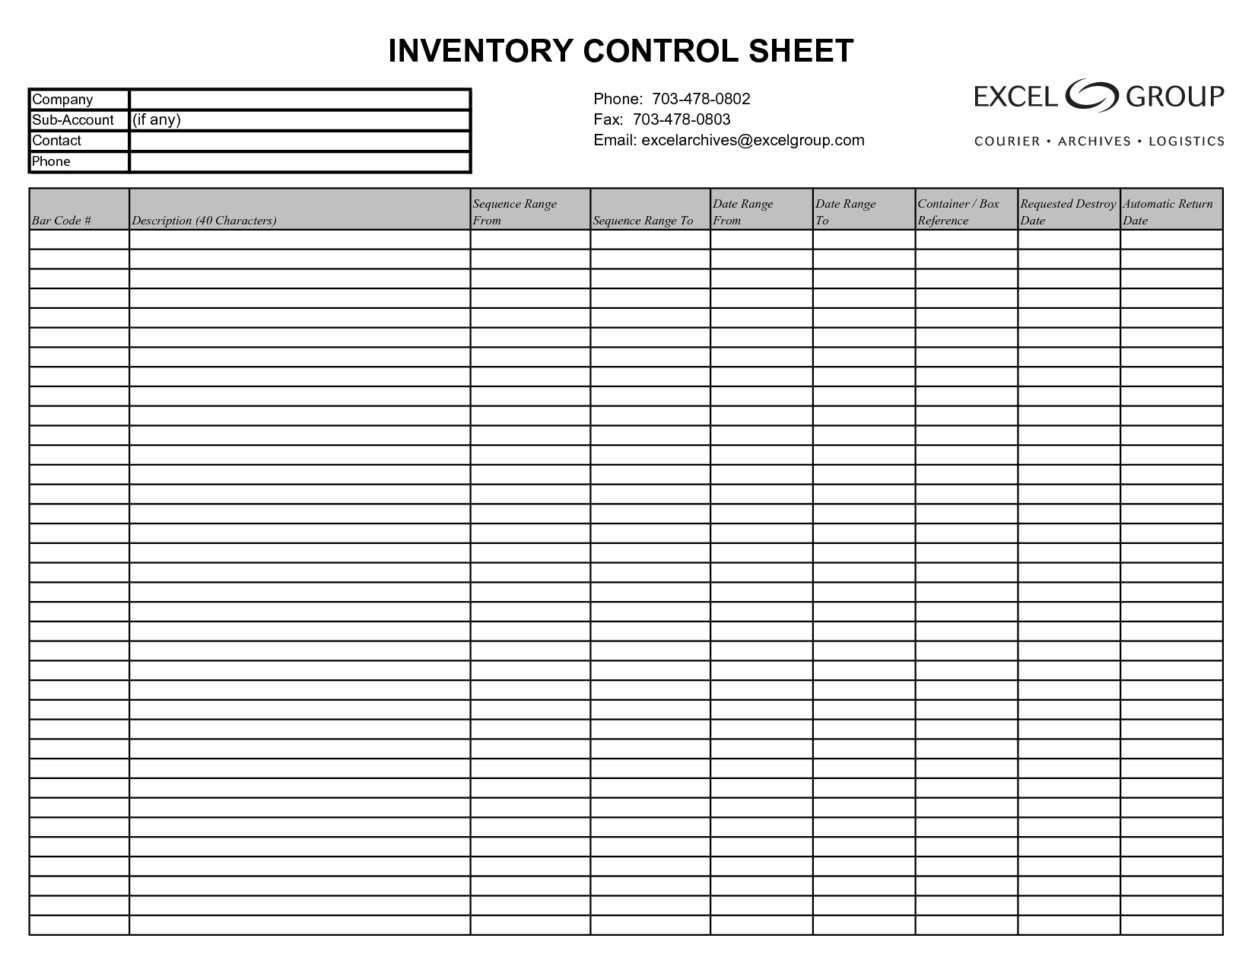 Inventory Spreadsheet Template Excel Product Tracking | My Inside Free Excel Inventory Tracking Spreadsheet